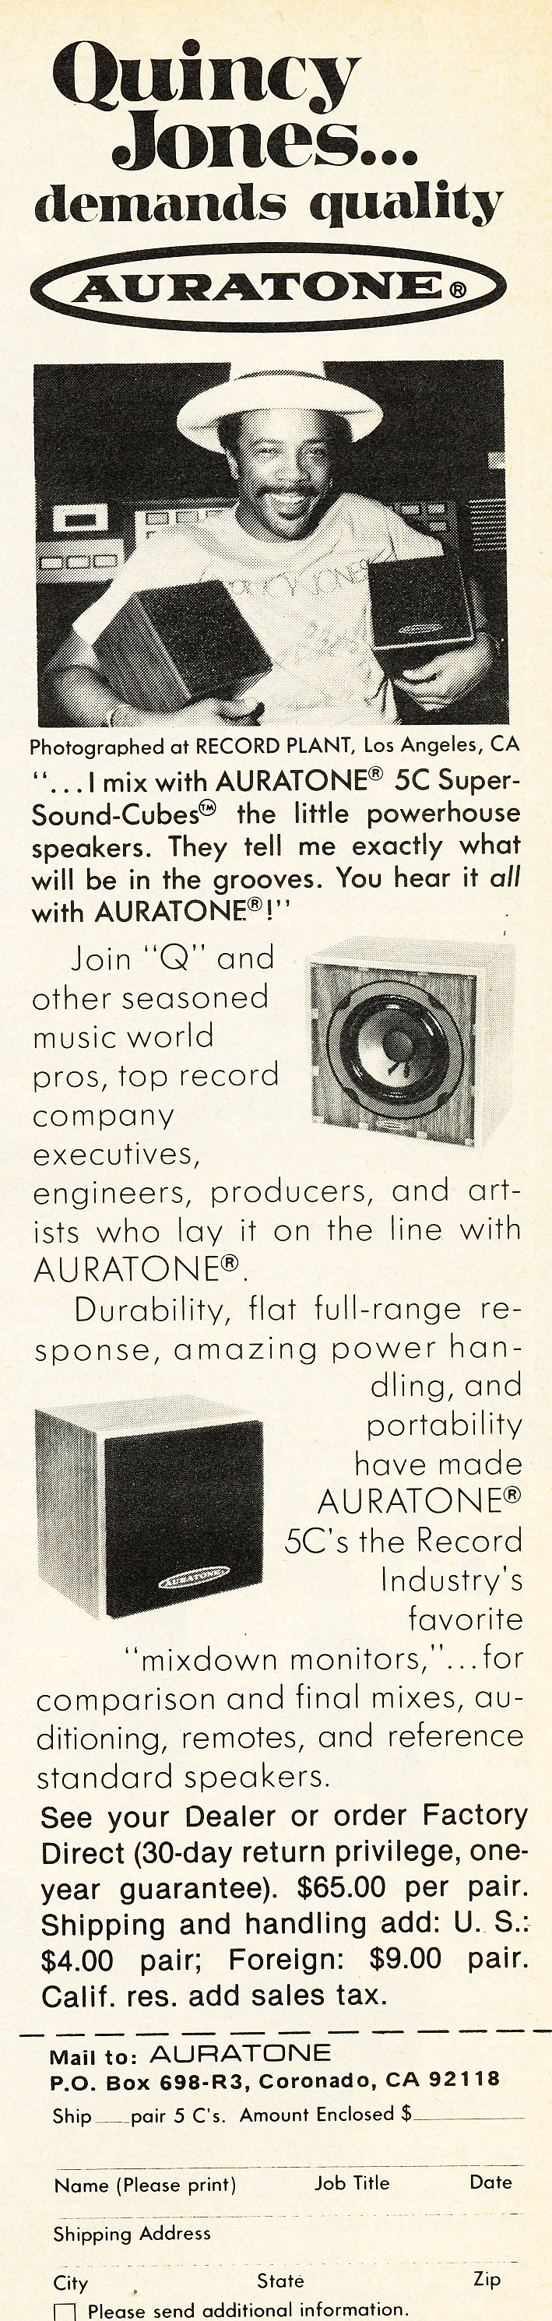 1979 ad for Auratone studio speakers featuring Quincy Jones  in Reel2ReelTexas.com's vintage recording collection